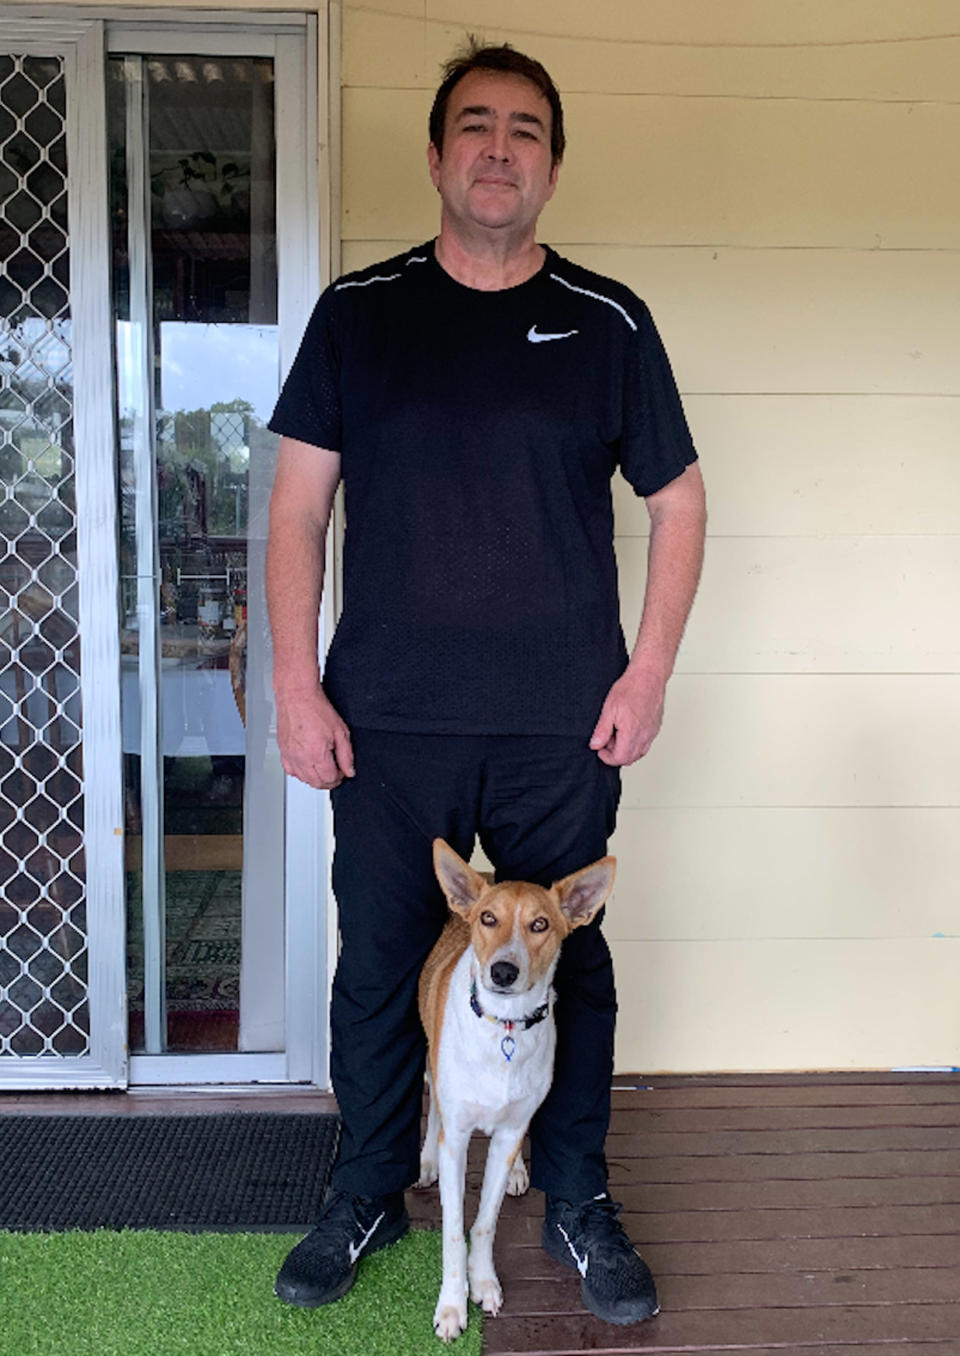 Man who lost weight during coronavirus lockdown standing with his dog